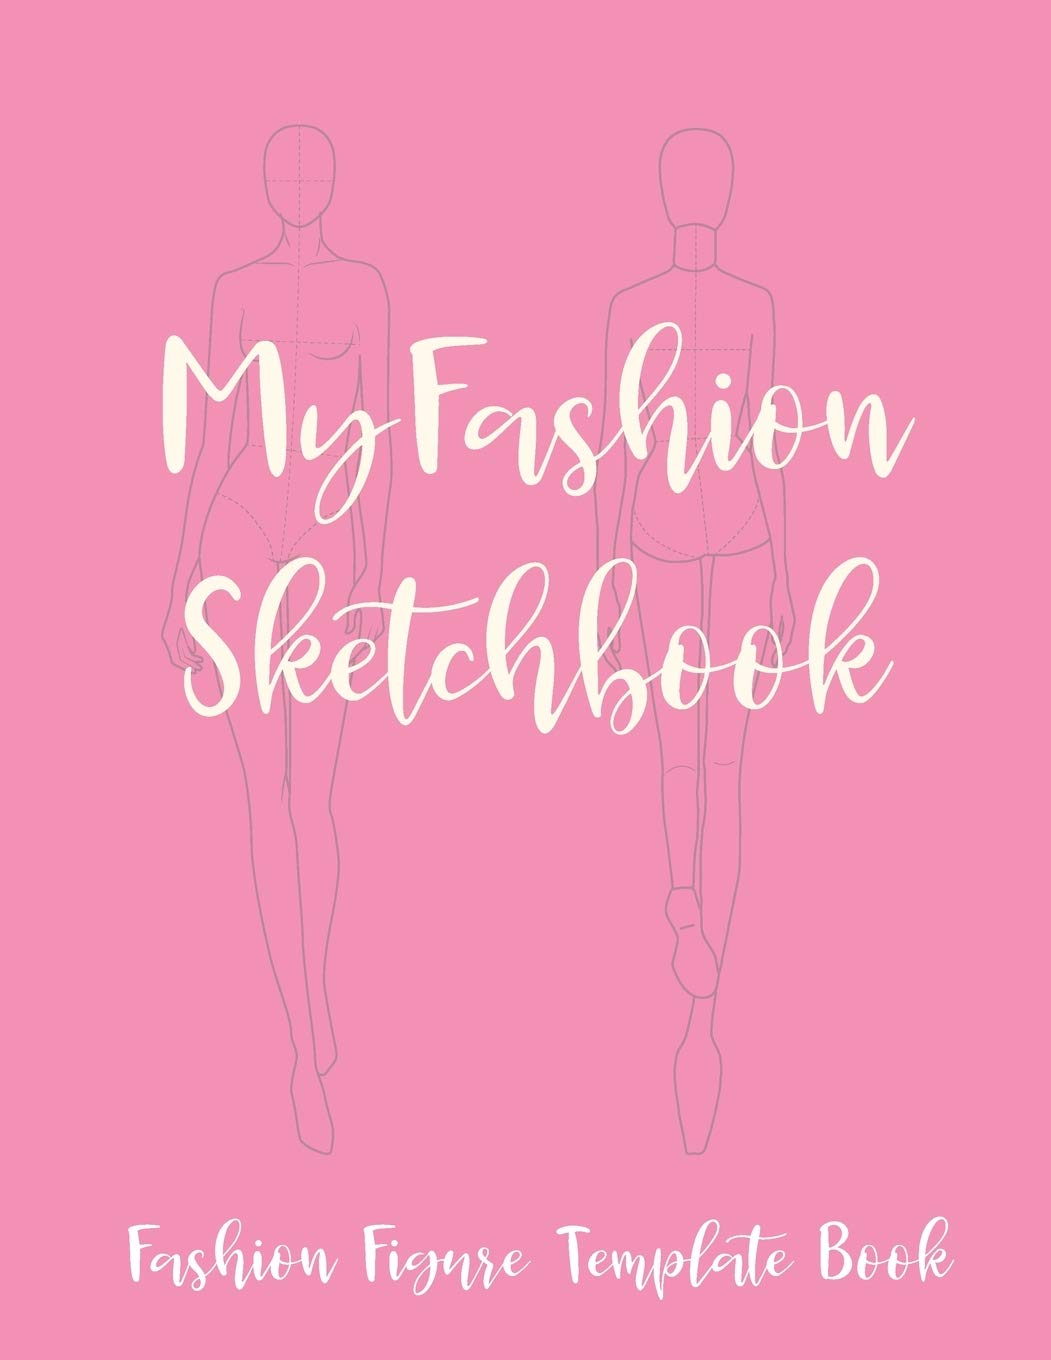 Amazon Com My Fashion Sketchbook Fashion Figure Template Book Novelty Gifts Sketchbook For Fashion Designers For Women Blank Fashion Croquis Notebook To Design Ideas And Build Your Portfolio Fast 9798600621008